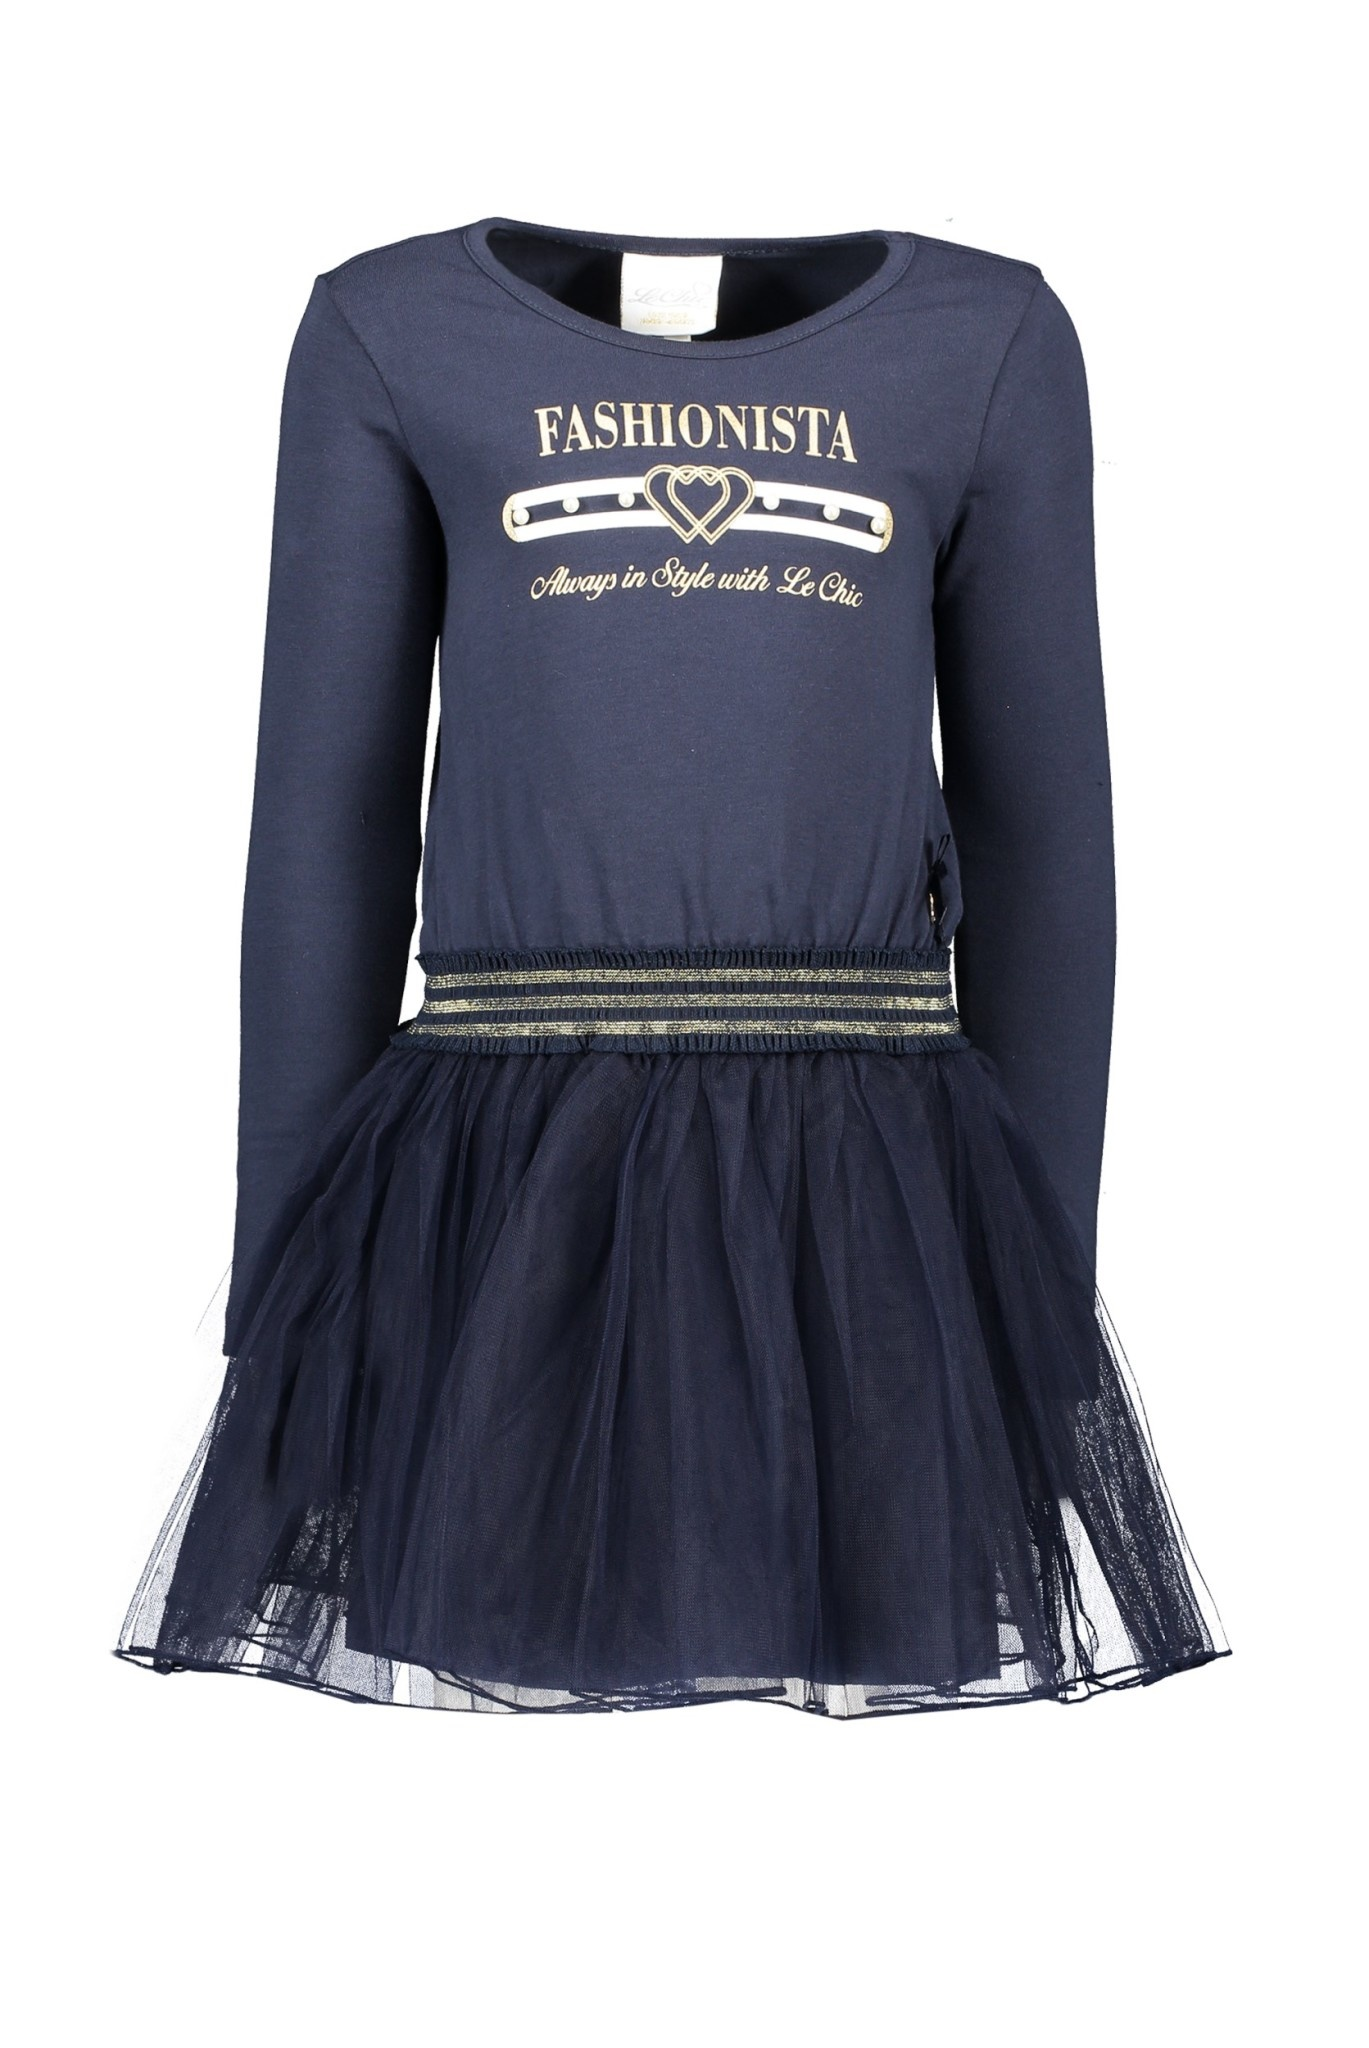 Lechic Le Chic Navy Fashionista Dress